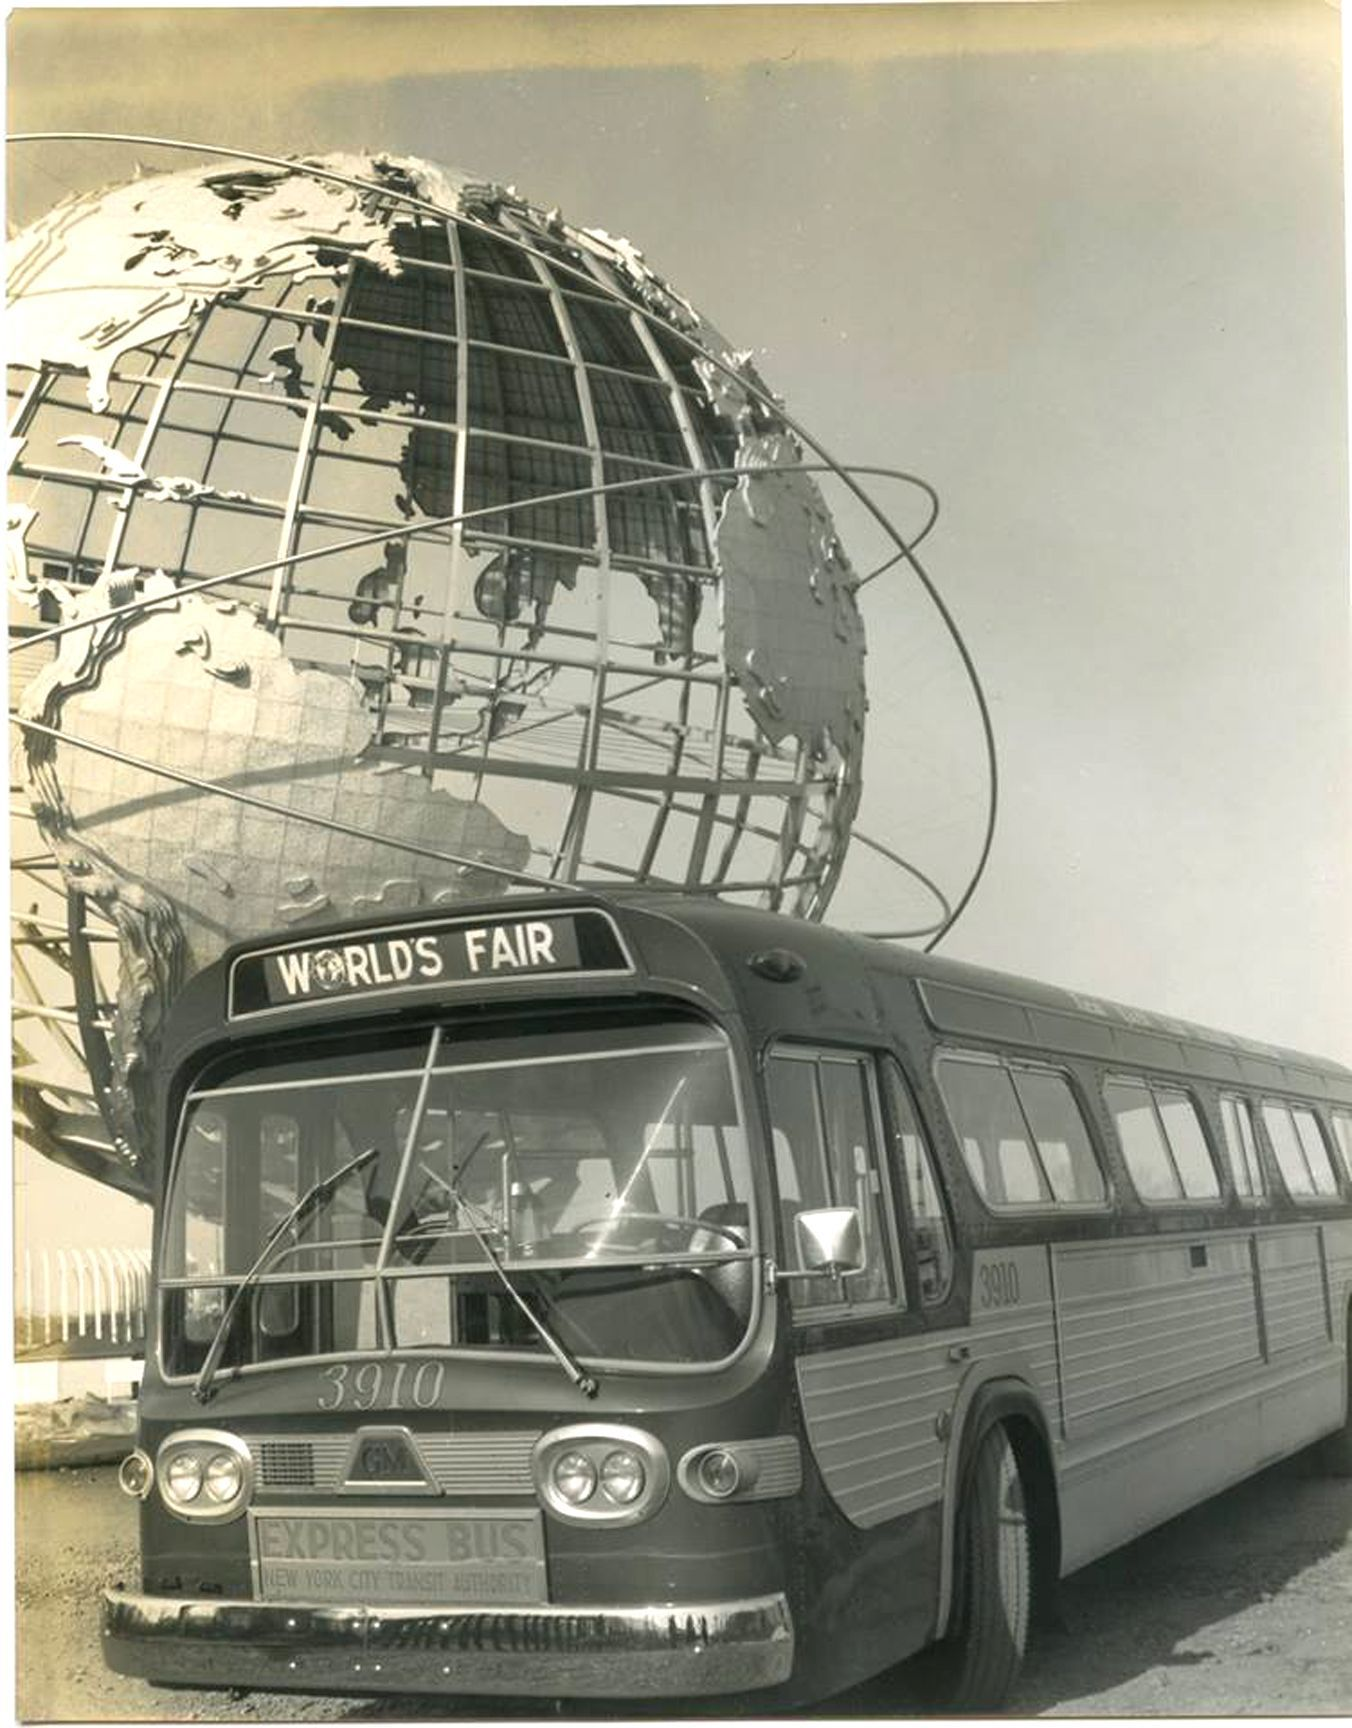 Pin By Trudie Henderson On New York Worlds Fair 1964-1965